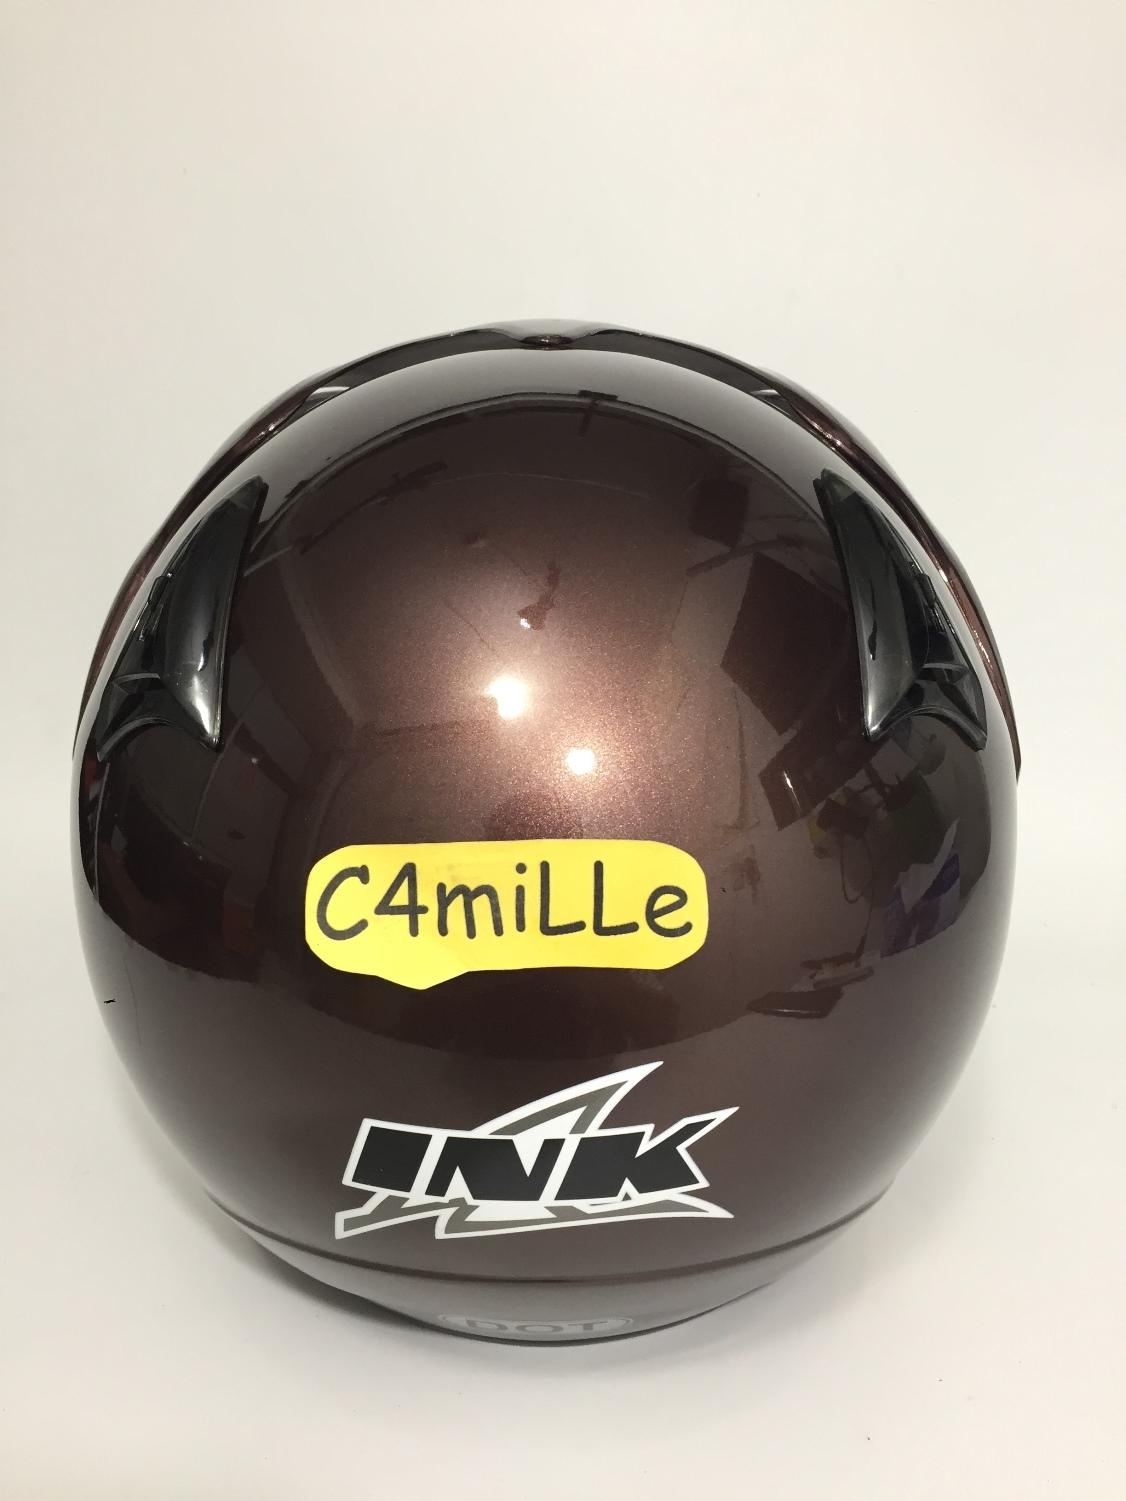 HELM INK CX 22 ORIGINAL DARK MAROON HALF FACE SIZE M